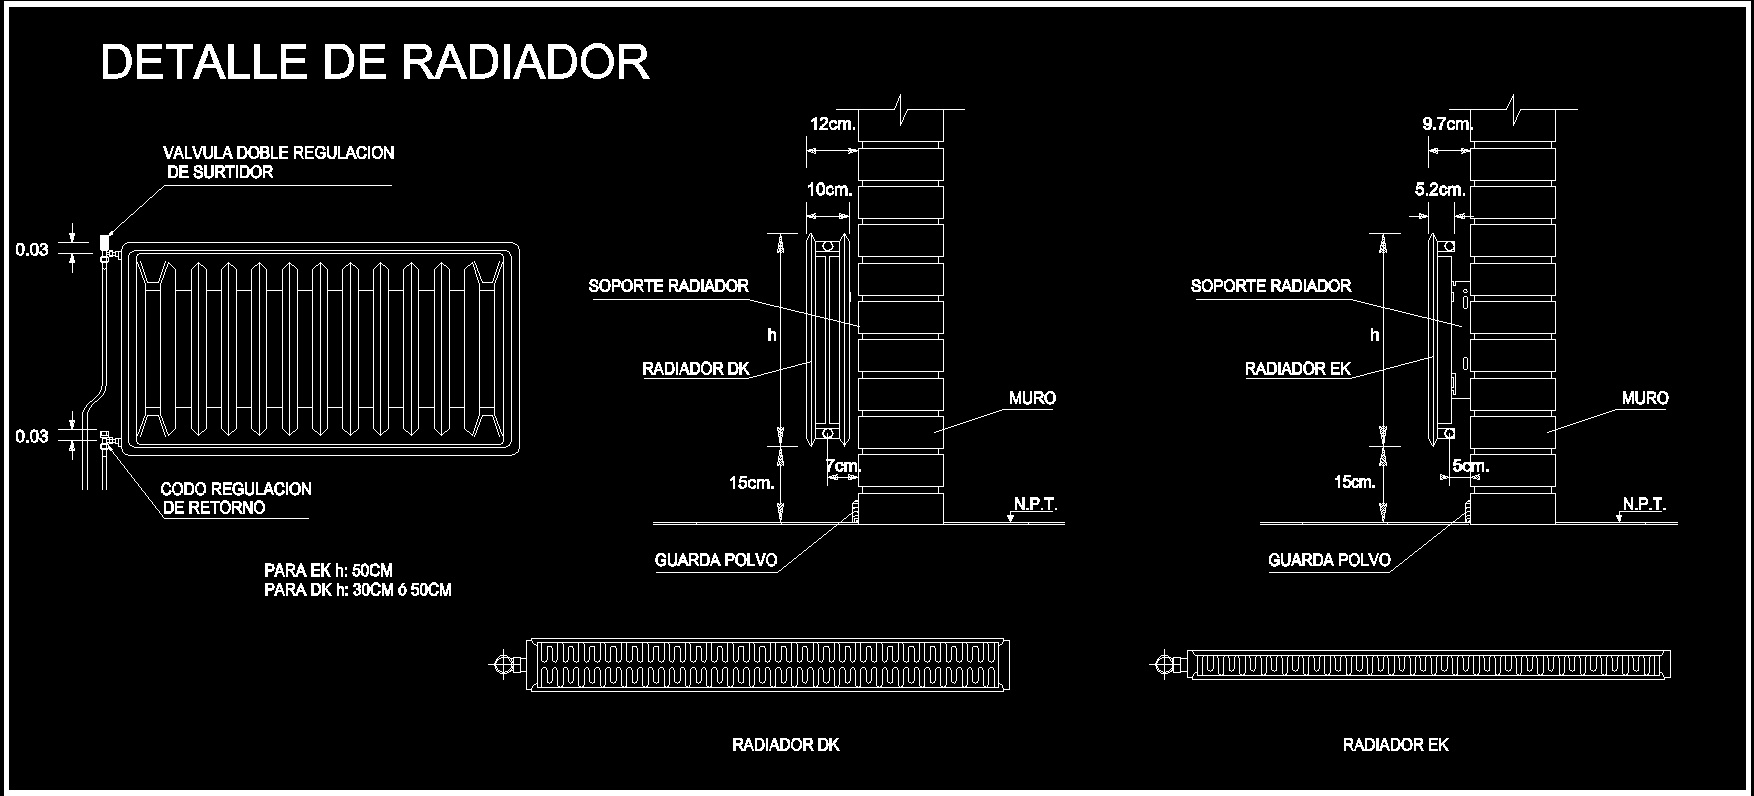 radiators details dwg detail for autocad  u2022 designs cad